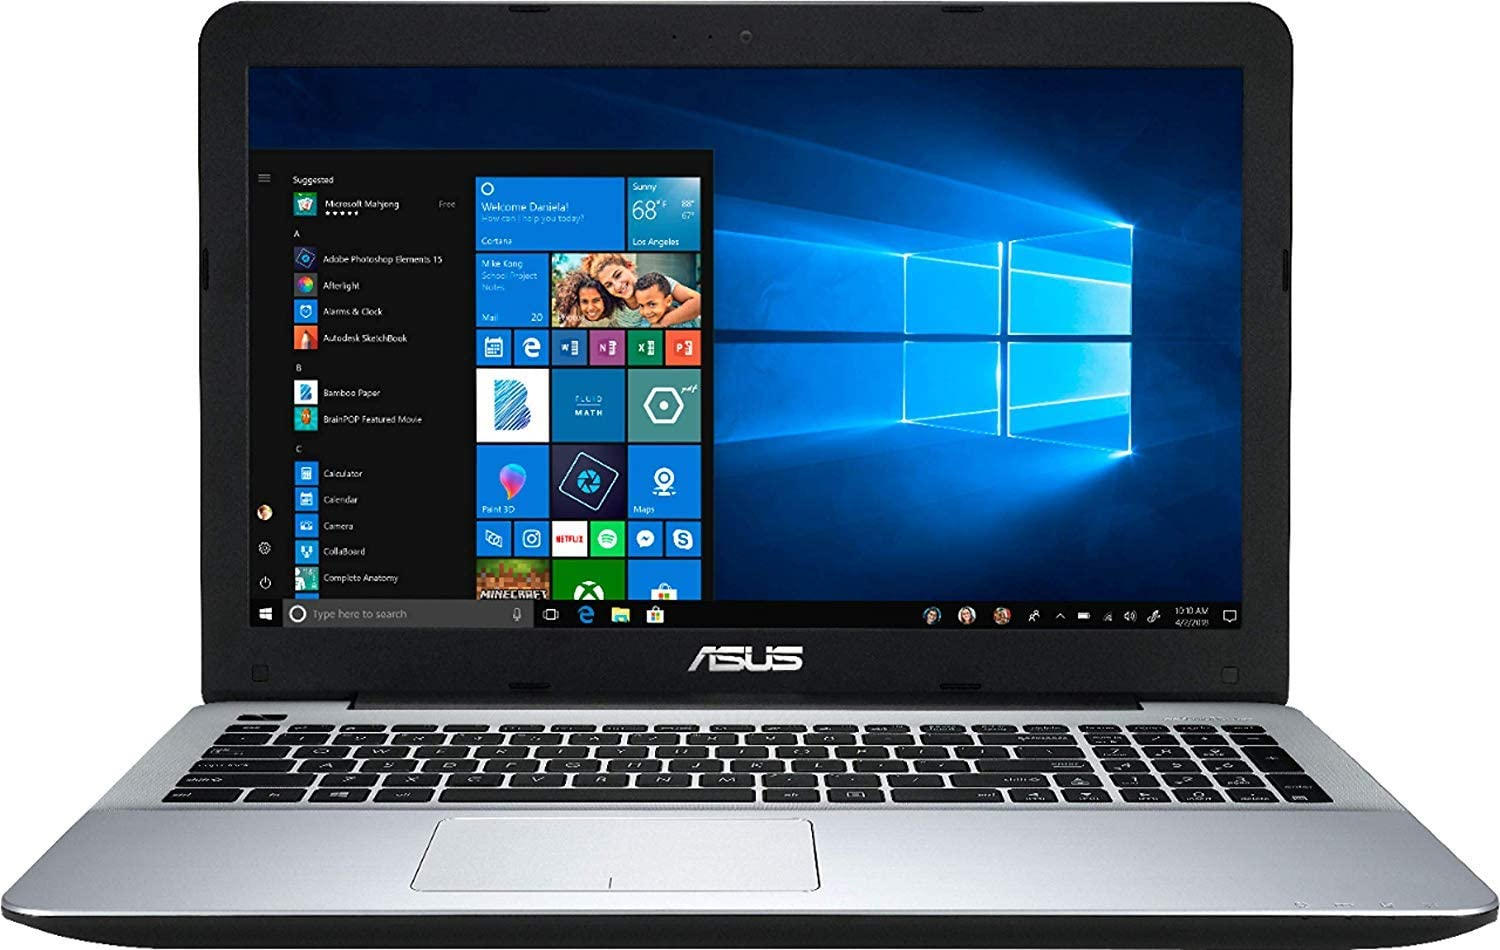 "2019 ASUS 15.6"" High Performance Laptop Computer, AMD Quad-Core A12-9720P Processor up to 3.6GHz, 8GB DDR4 RAM, 128GB SSD, AMD Radeon R7 Graphics, WiFi, Bluetooth, USB 3.0, HDMI, Windows 10 Home"